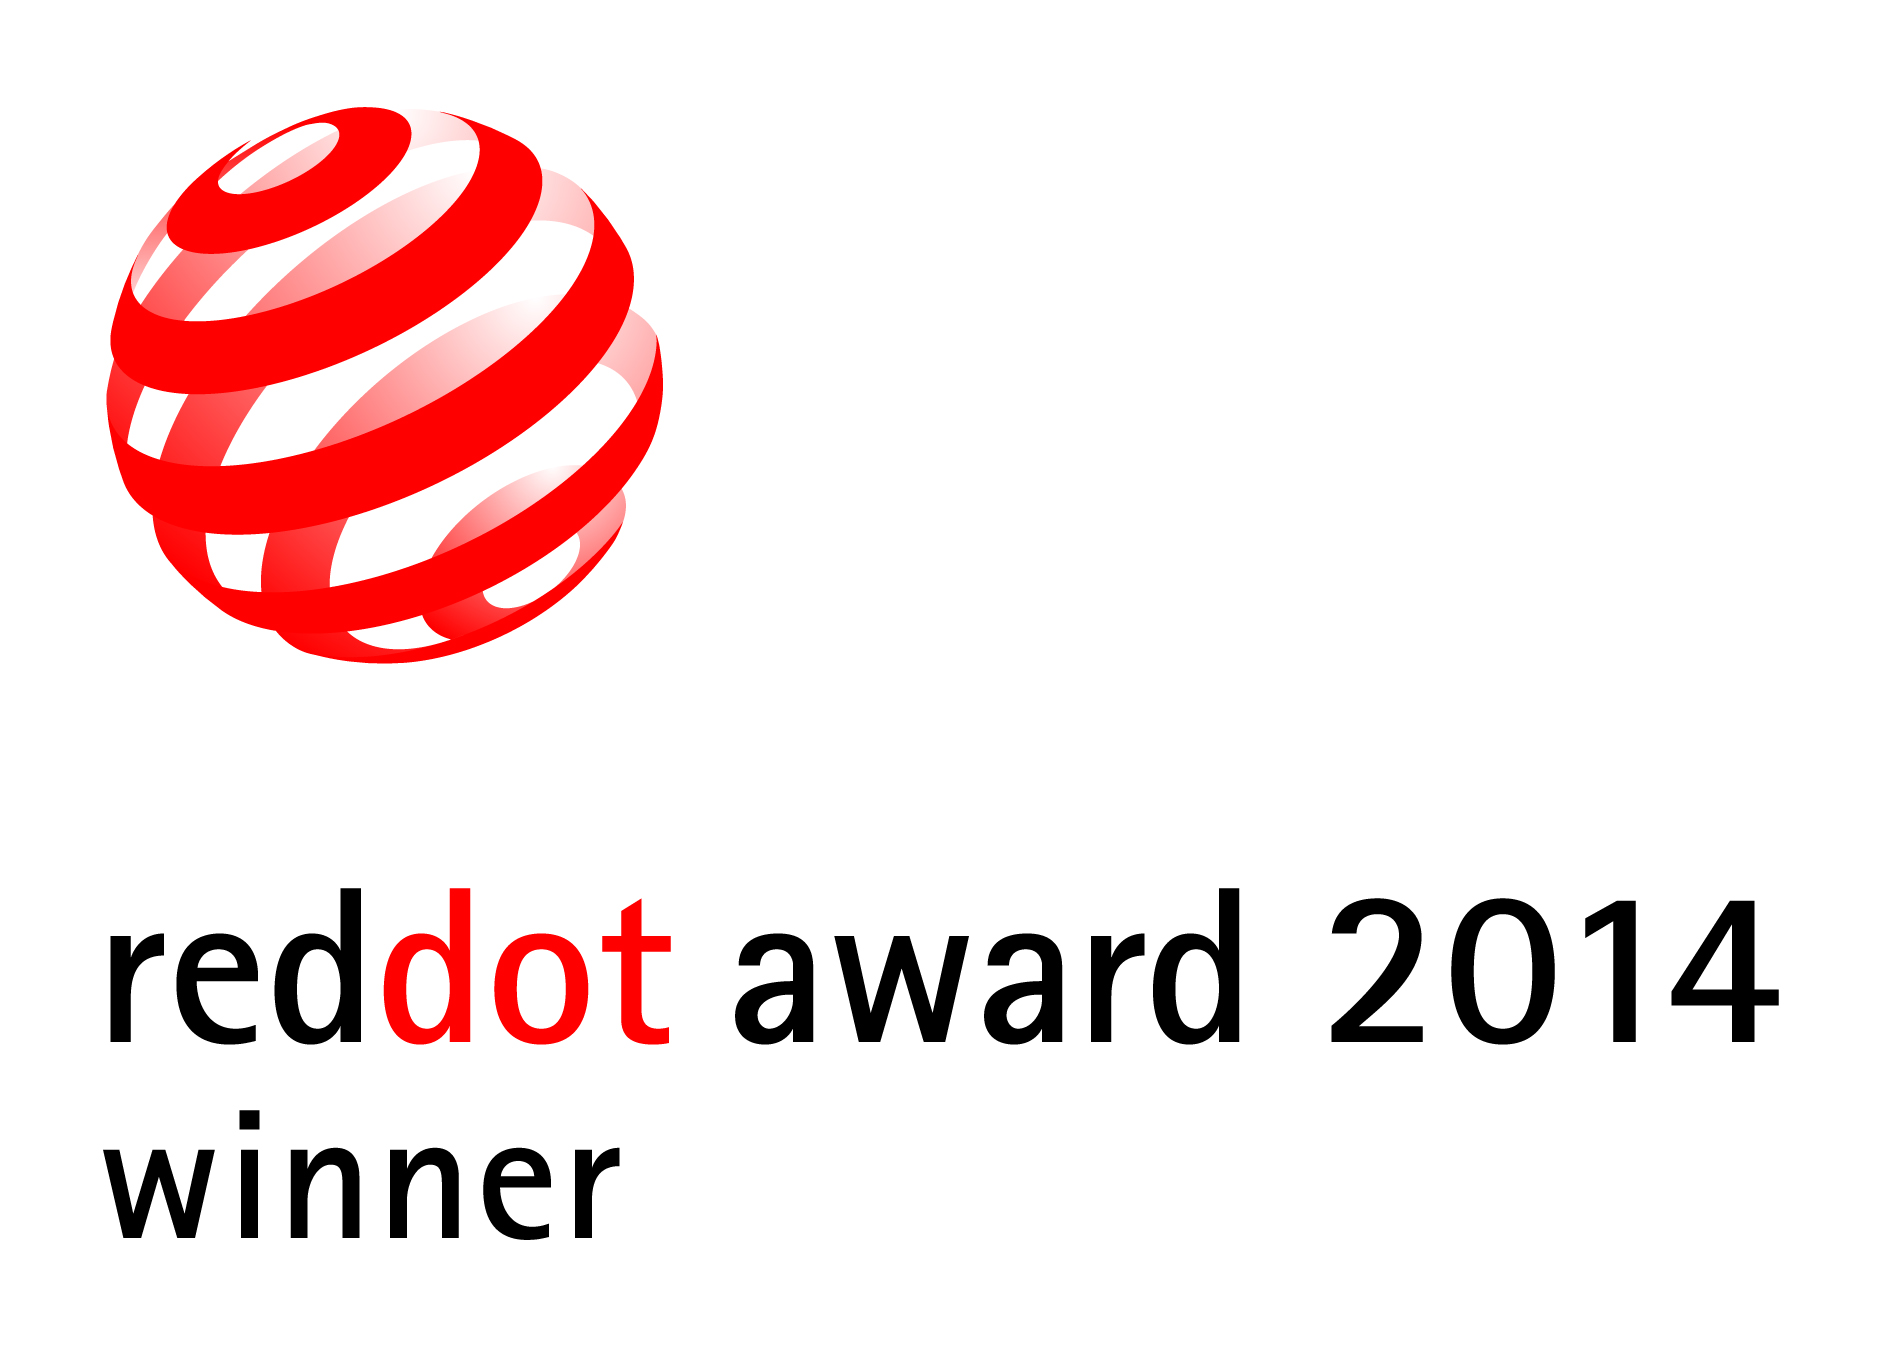 Reddot_Design_Award_2014